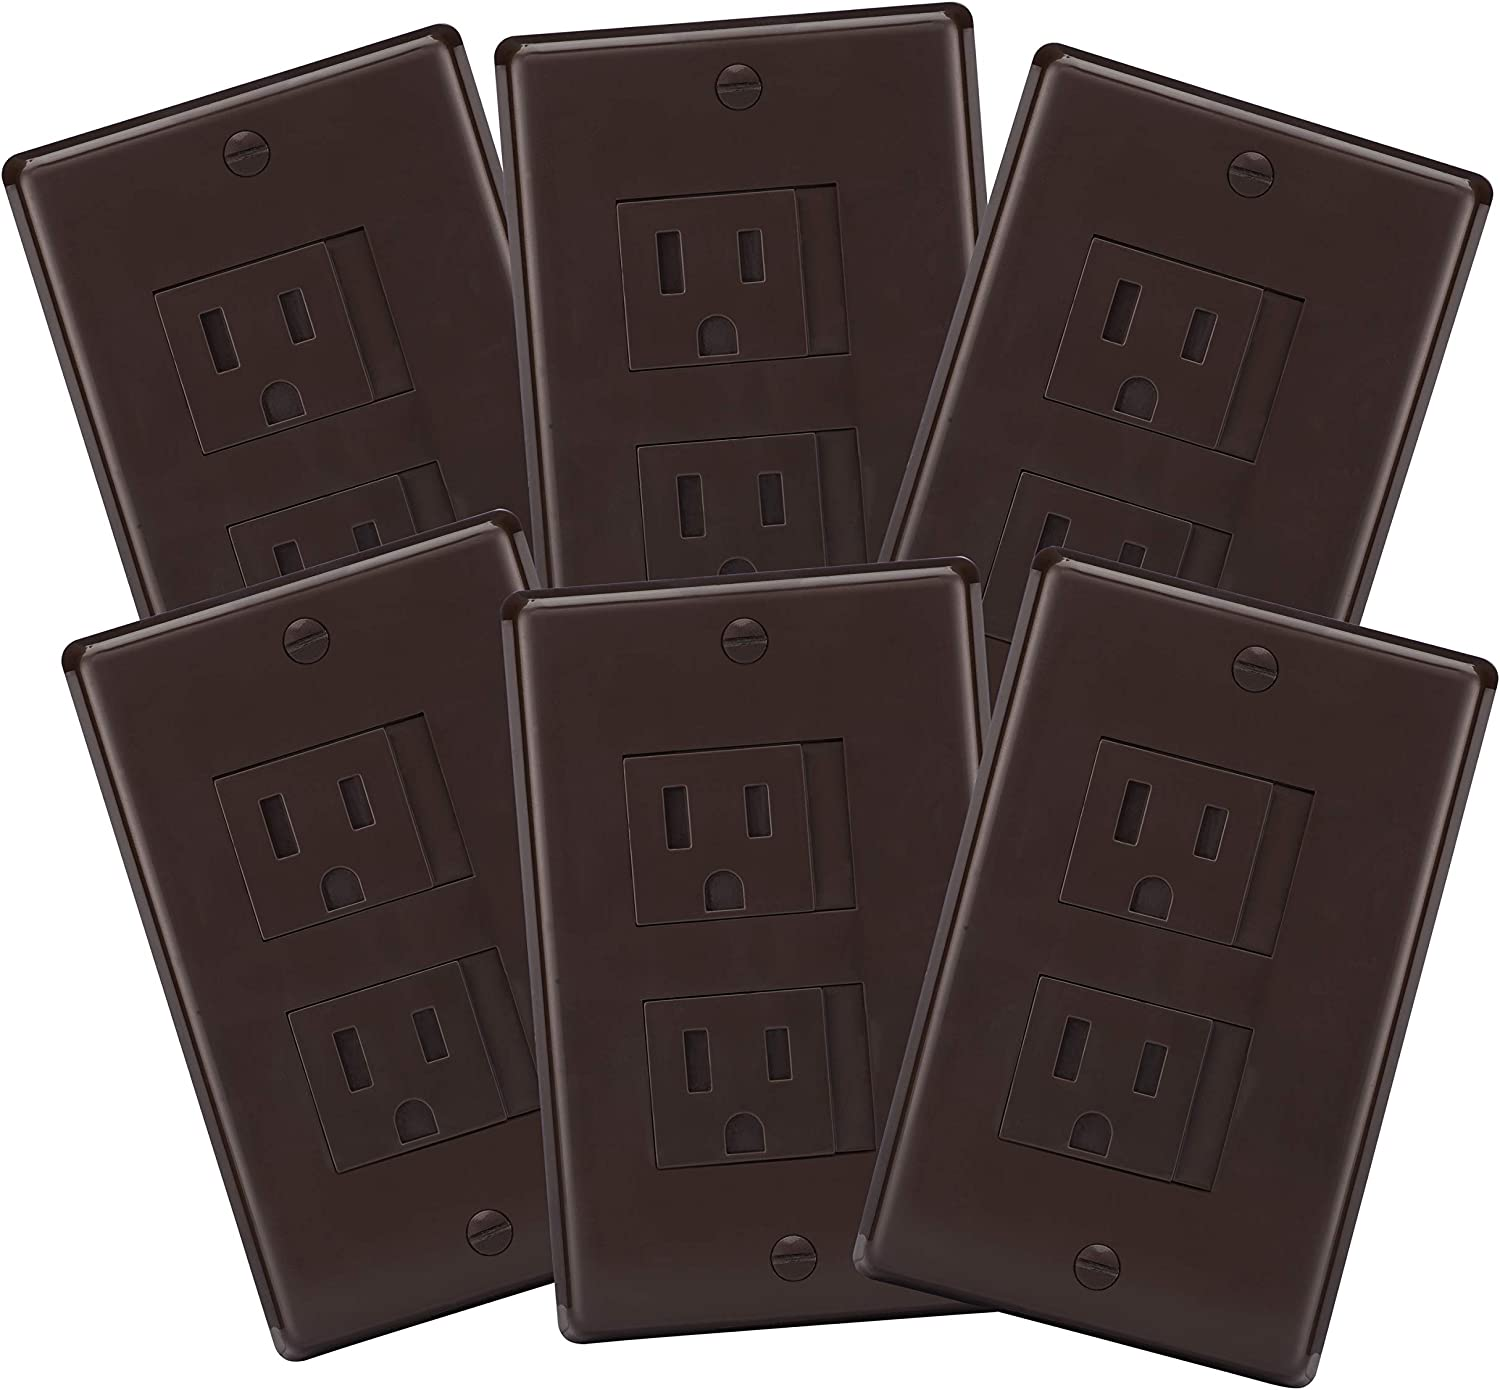 6-Pack Safety Innovations Self-Closing (1 Screw) Standard Outlet Covers - ein Alternative zu Wall Socket Plugs für Child Proofing Outlets (Espresso)